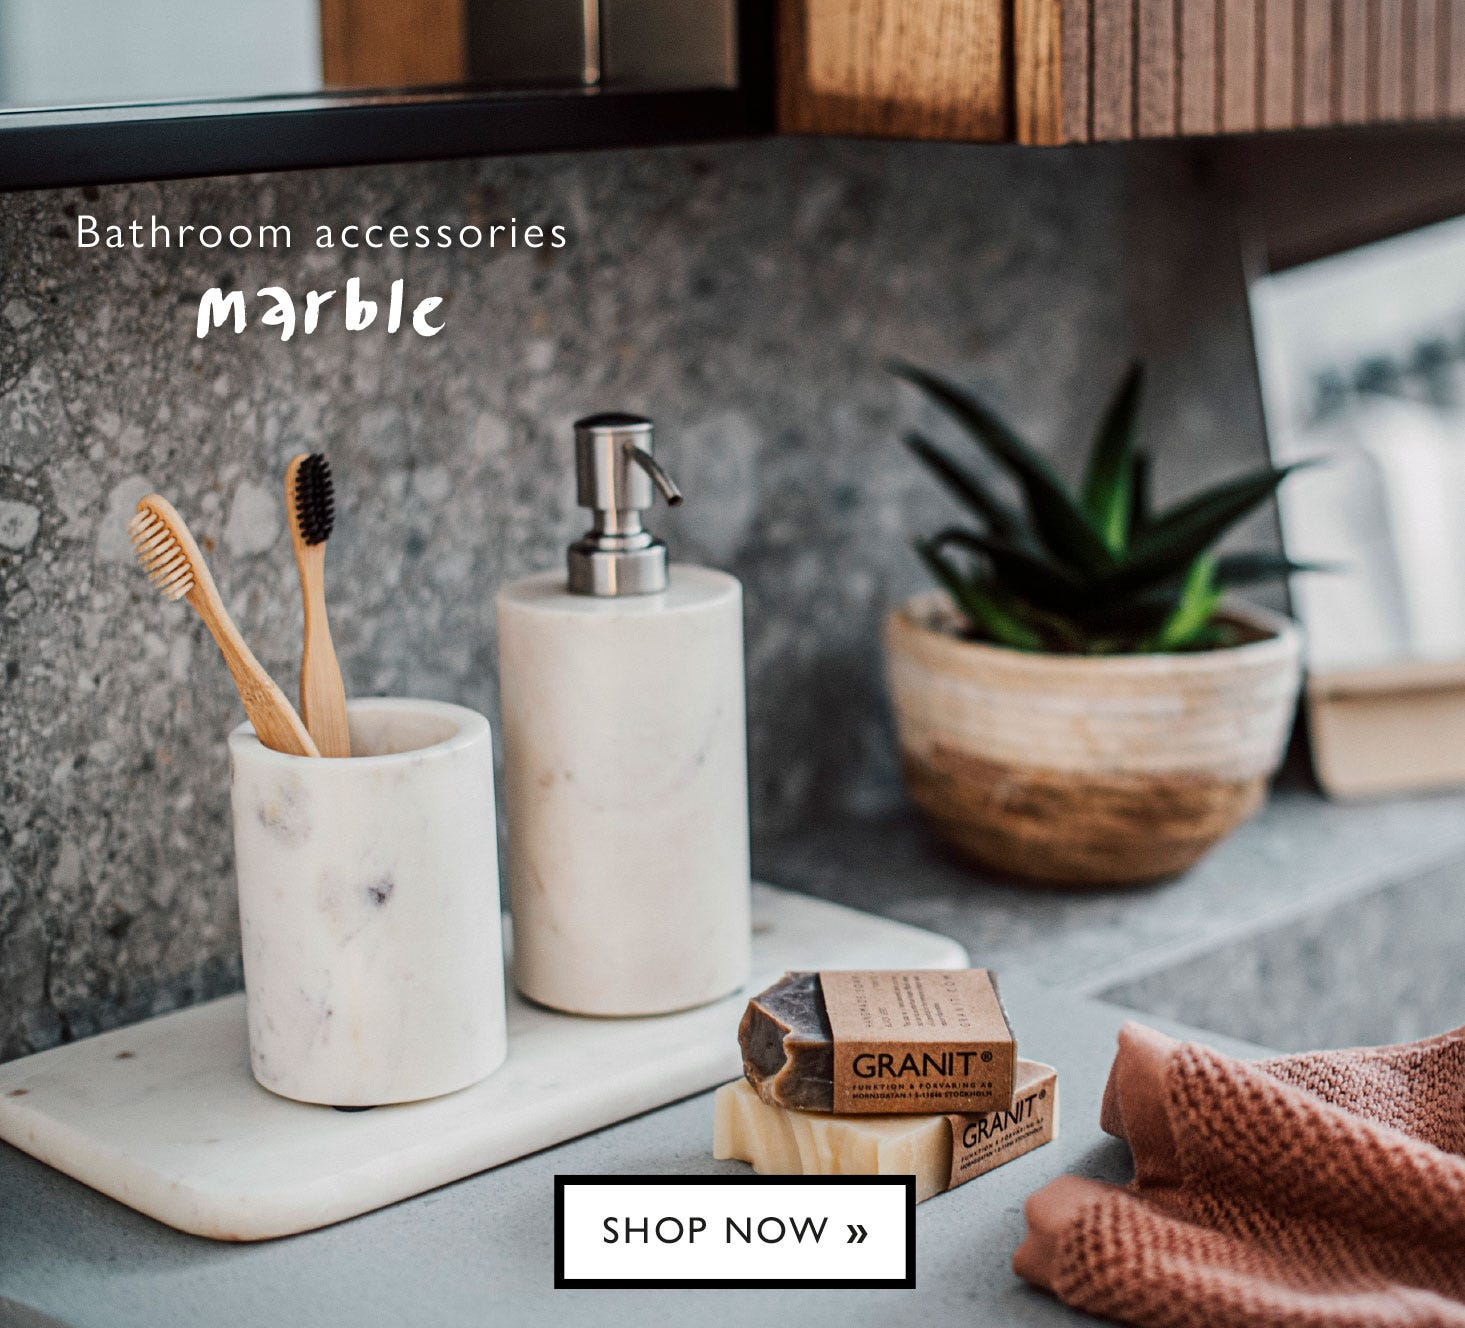 Soap dispenser and toothbrush cup, white marble